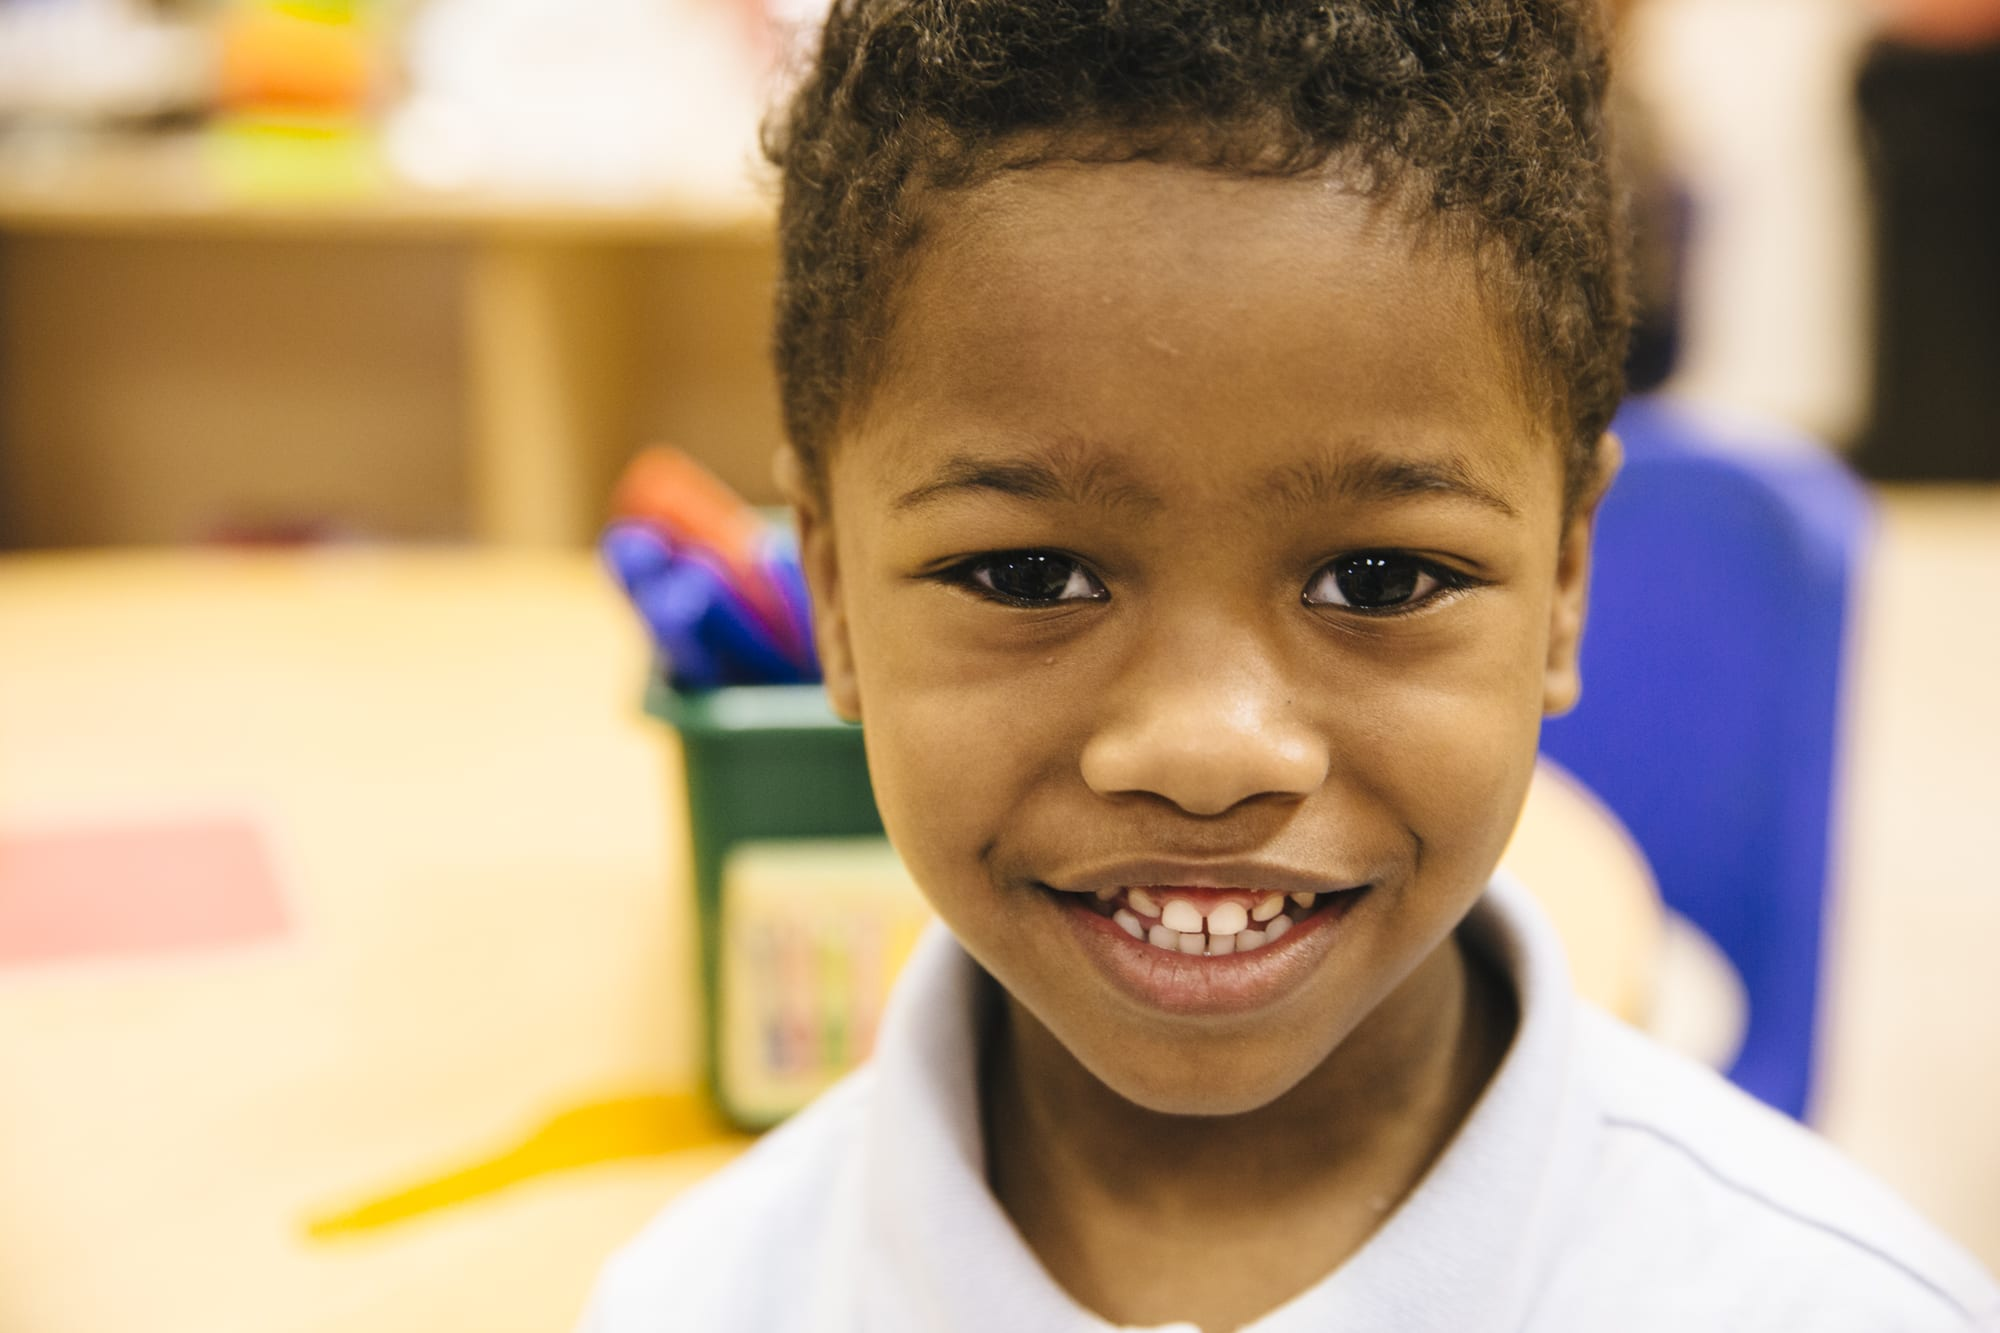 urban league of essex county early childhood education